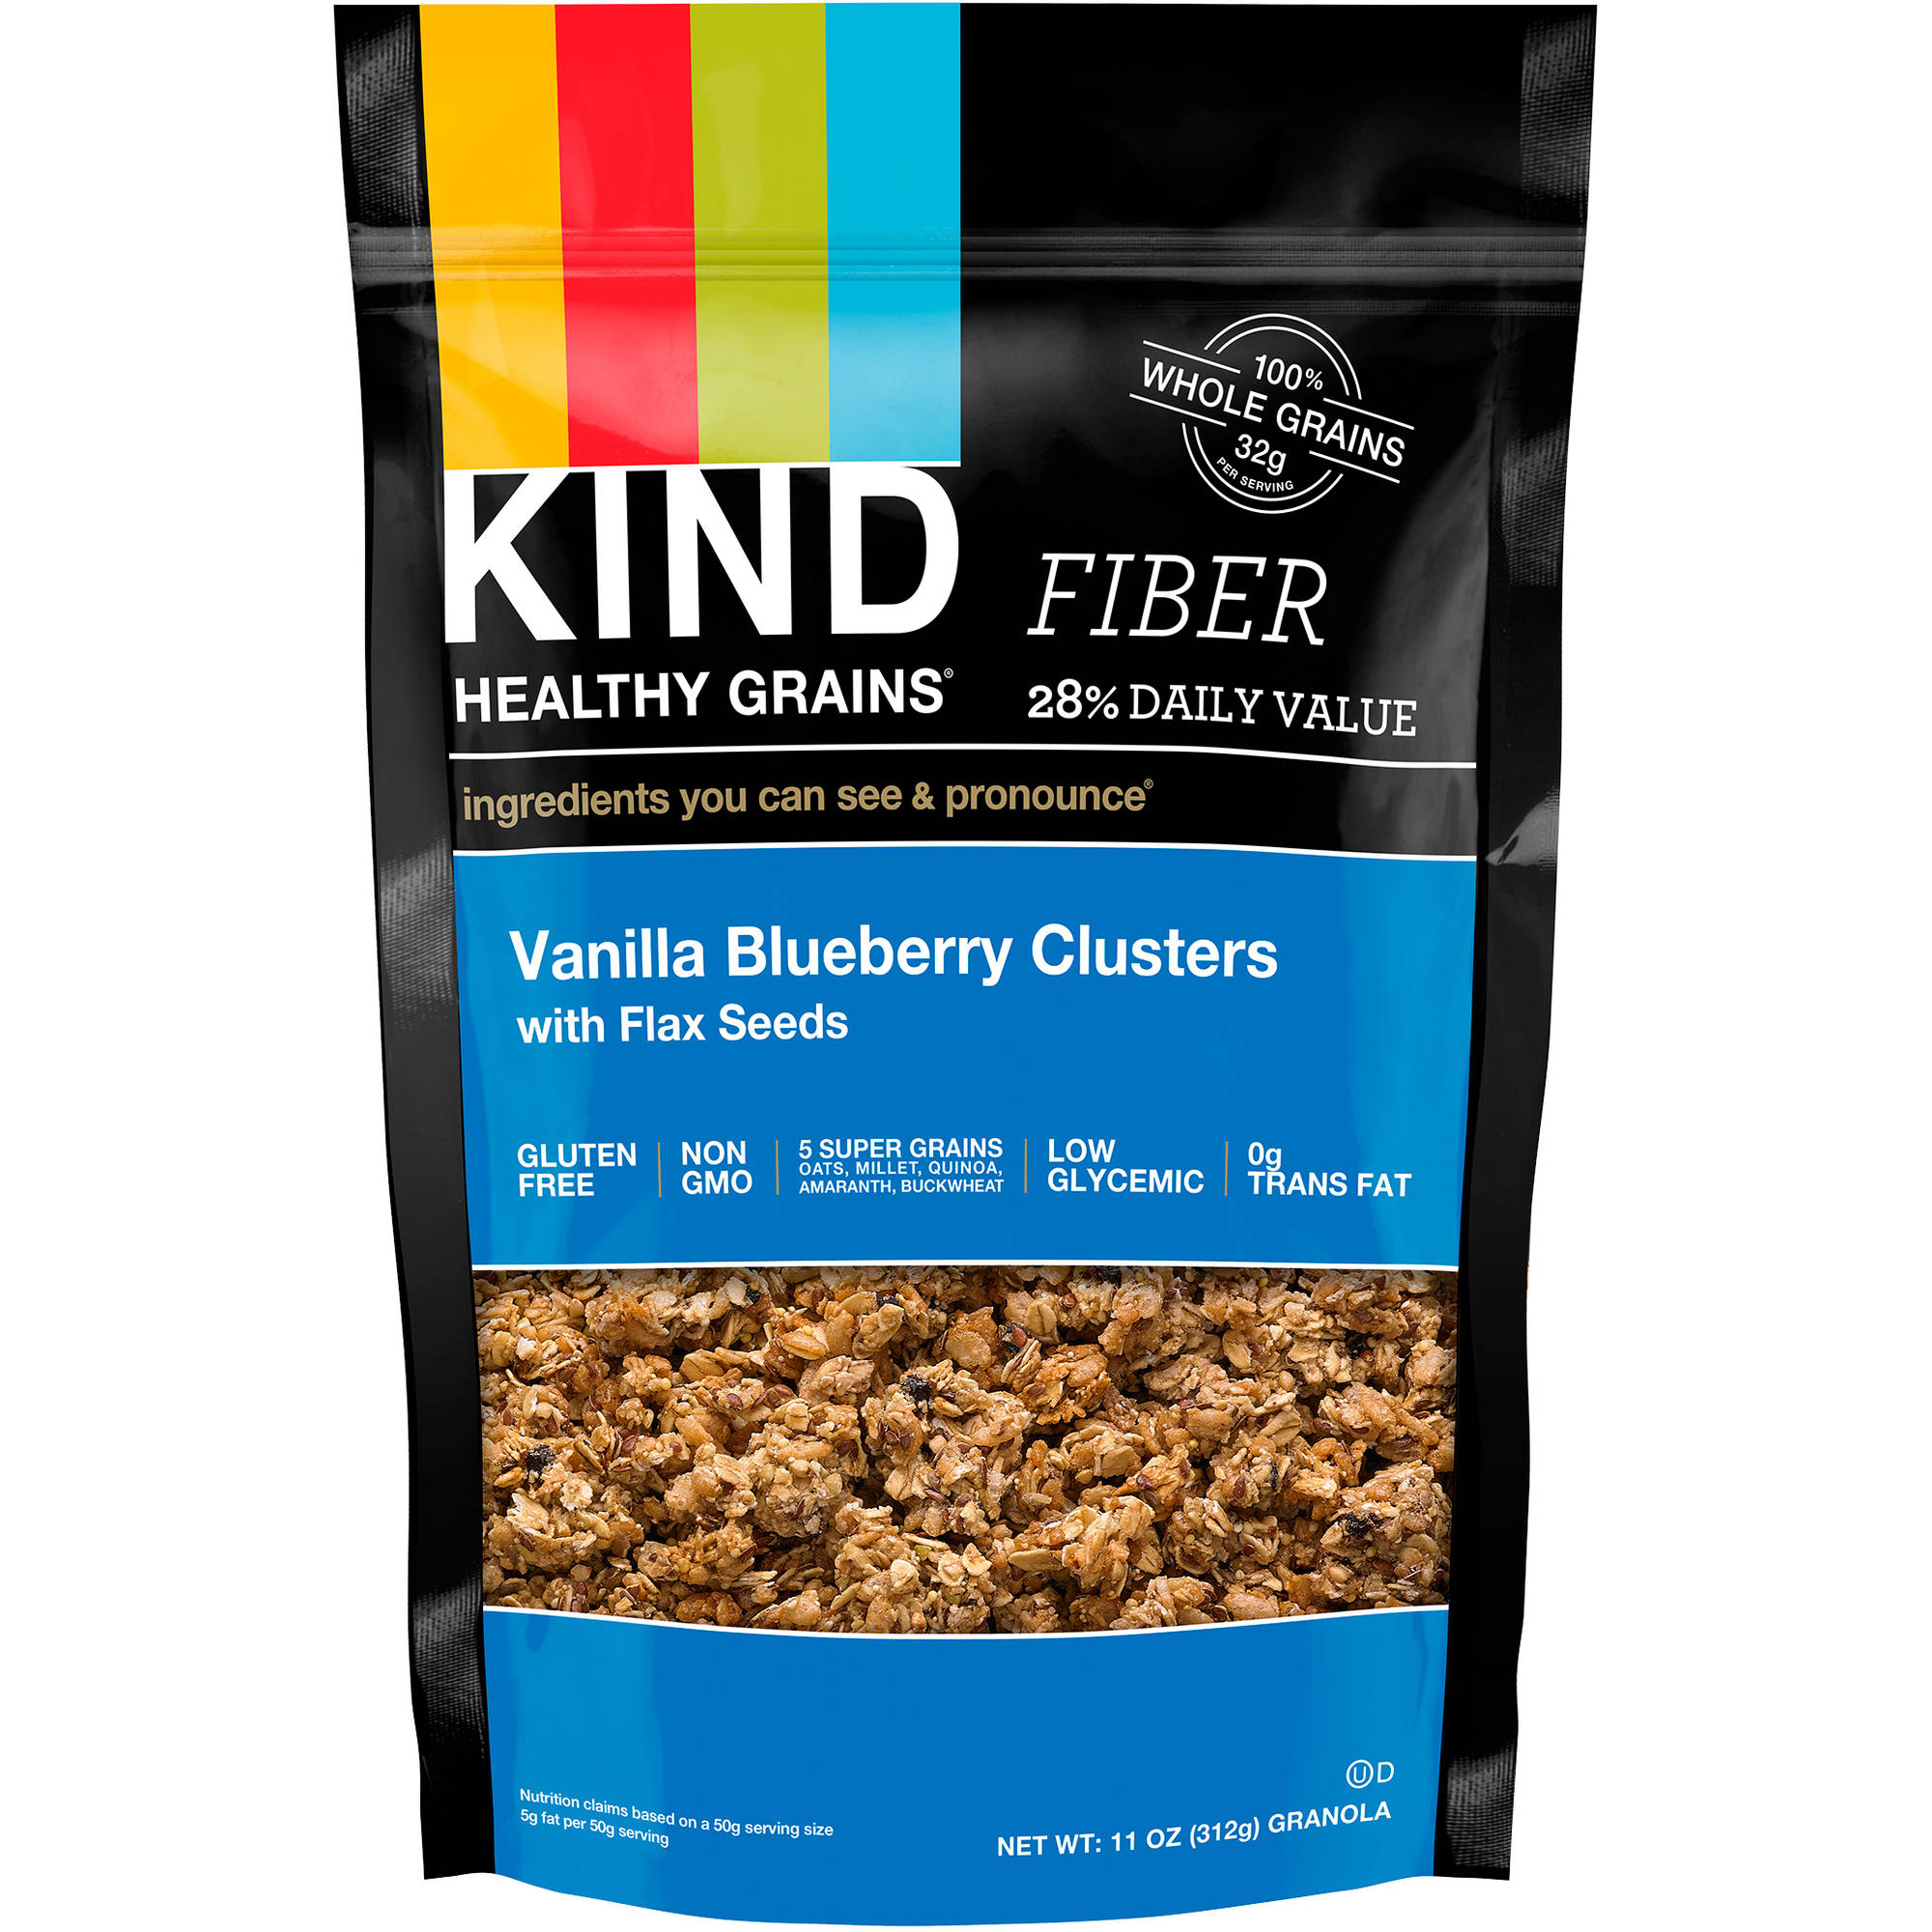 KIND Healthy Grains Clusters, Vanilla Blueberry Clusters with Flax Seeds, 11 Ounces, 1 Count